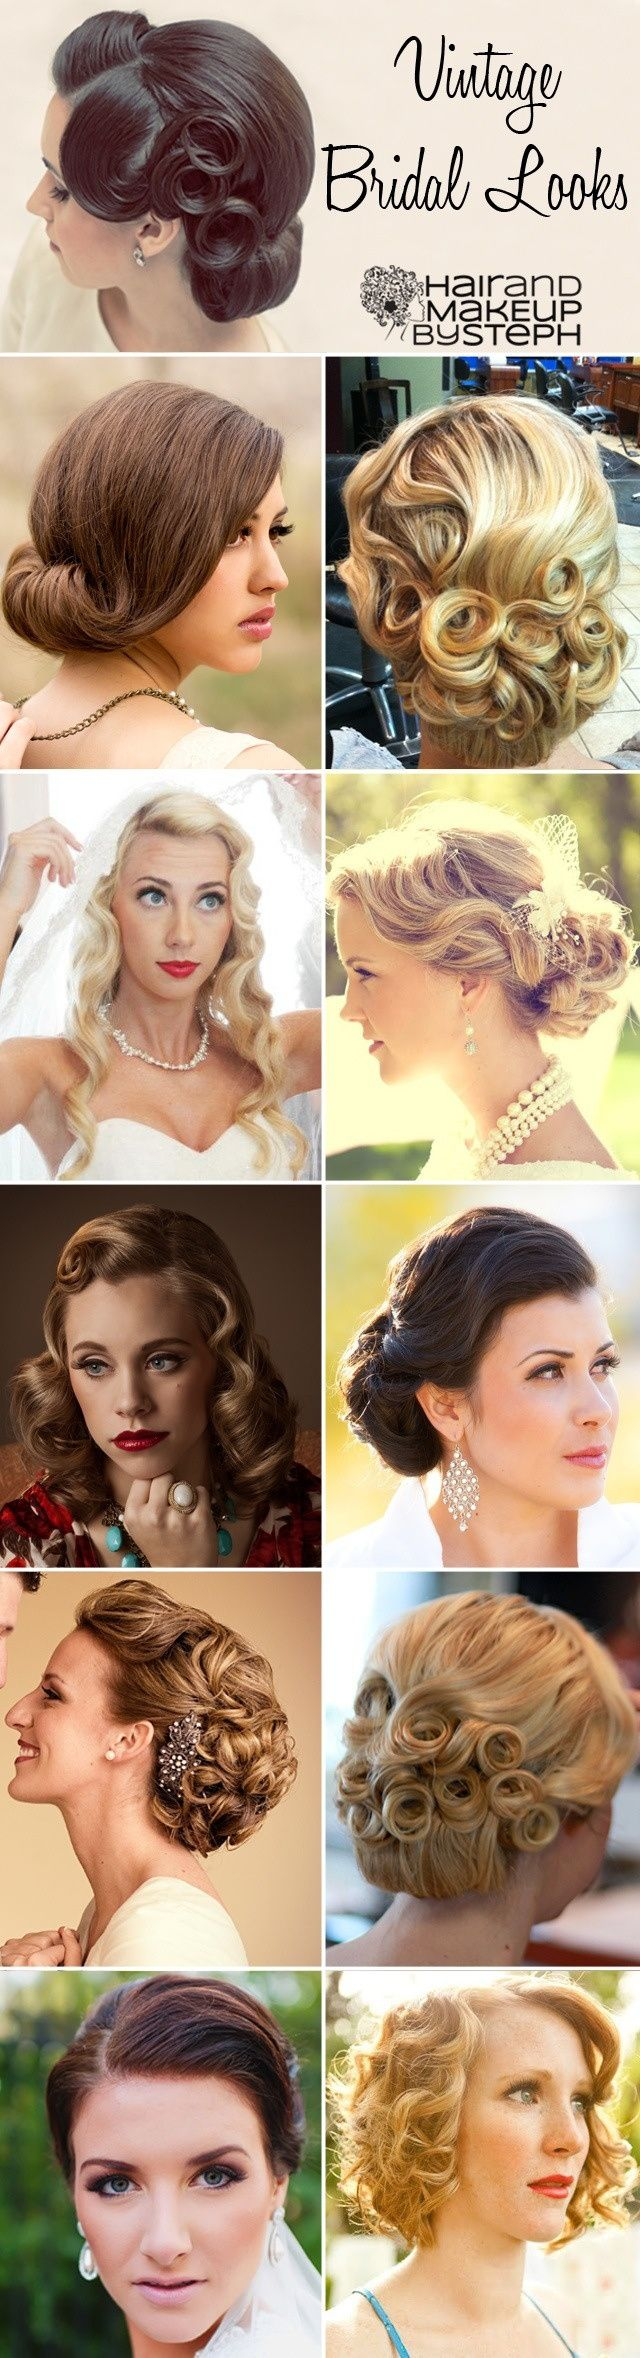 I love vintage hair and makeup. I wish I lived in that time so I could dress like that.